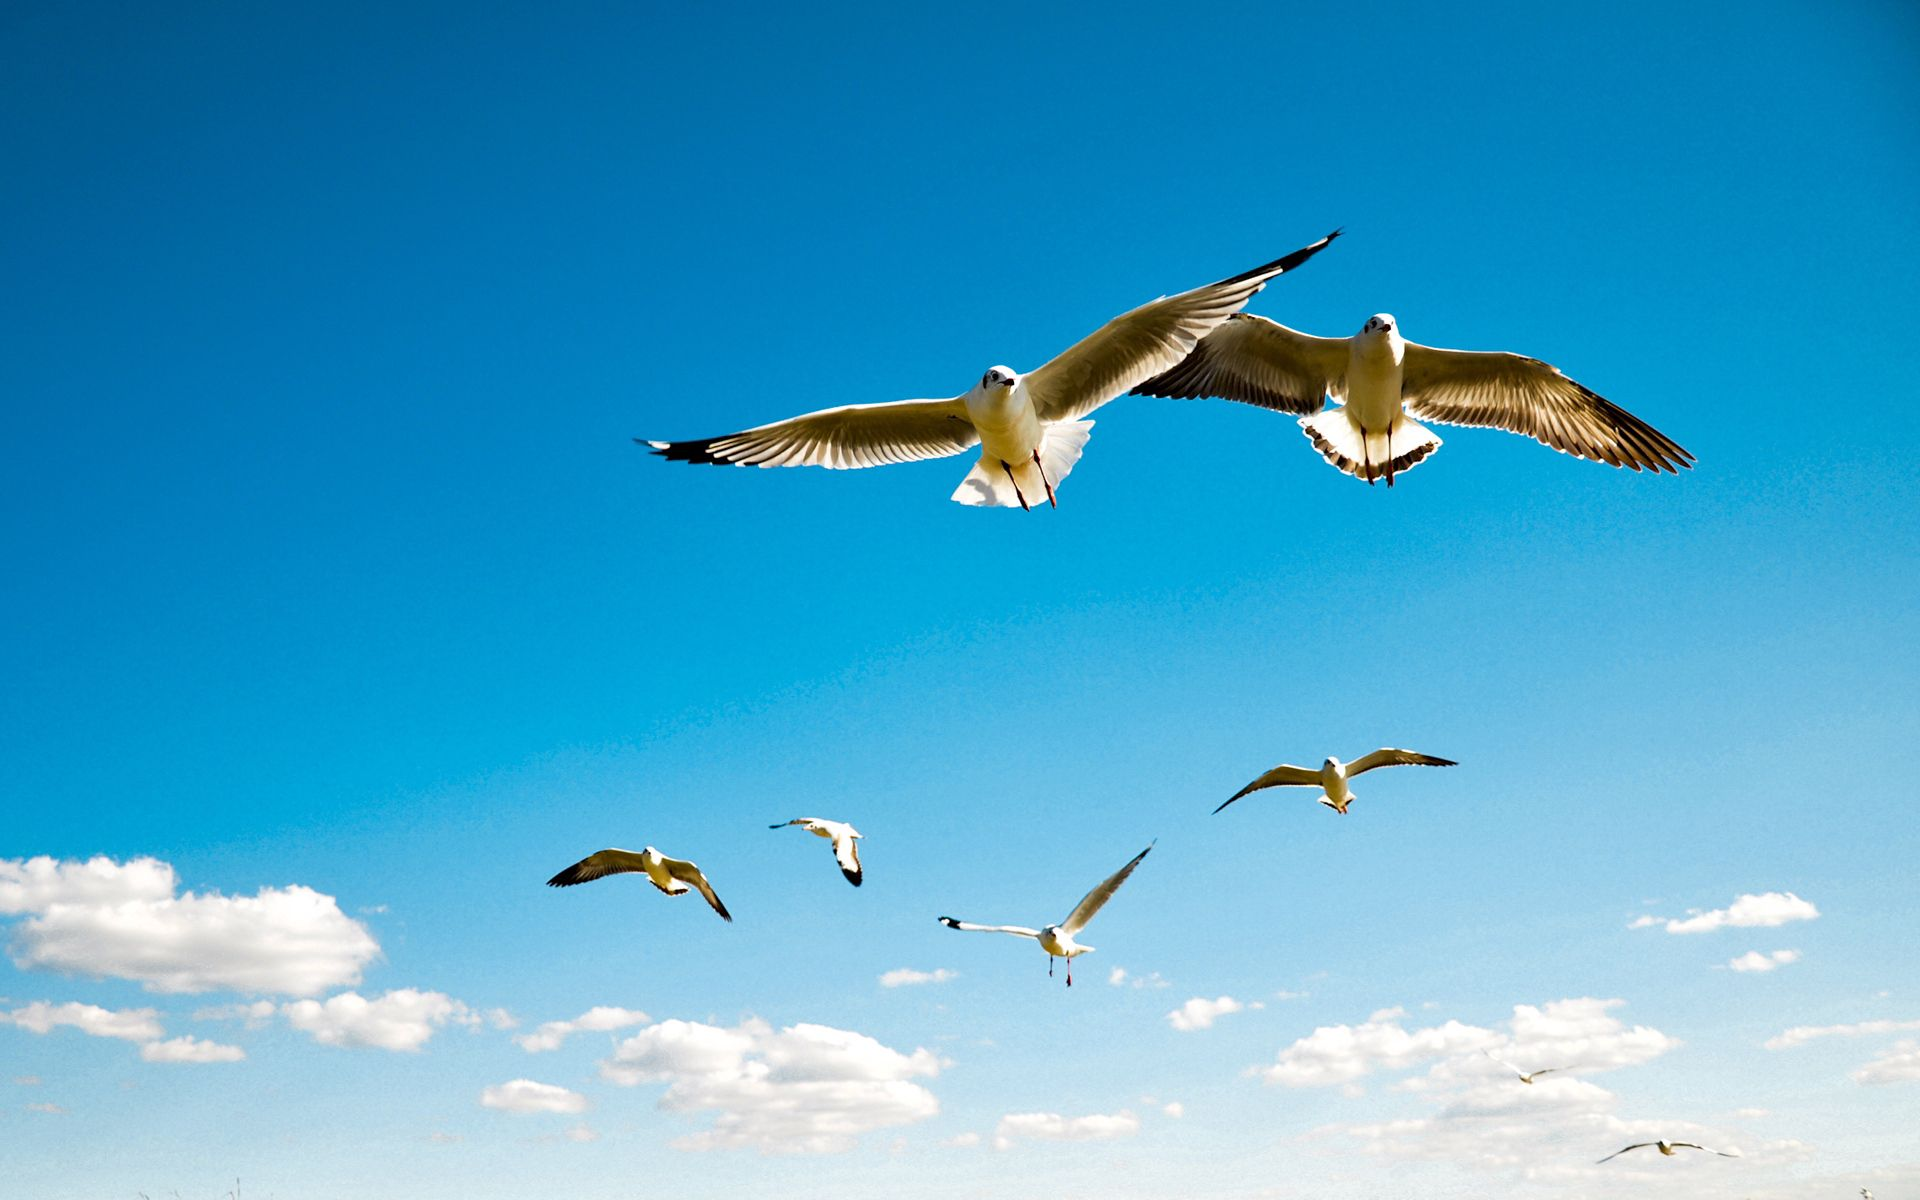 56126 download wallpaper Animals, Albatross, Wings, Sky, Flight, Swing, Birds, Seagulls screensavers and pictures for free